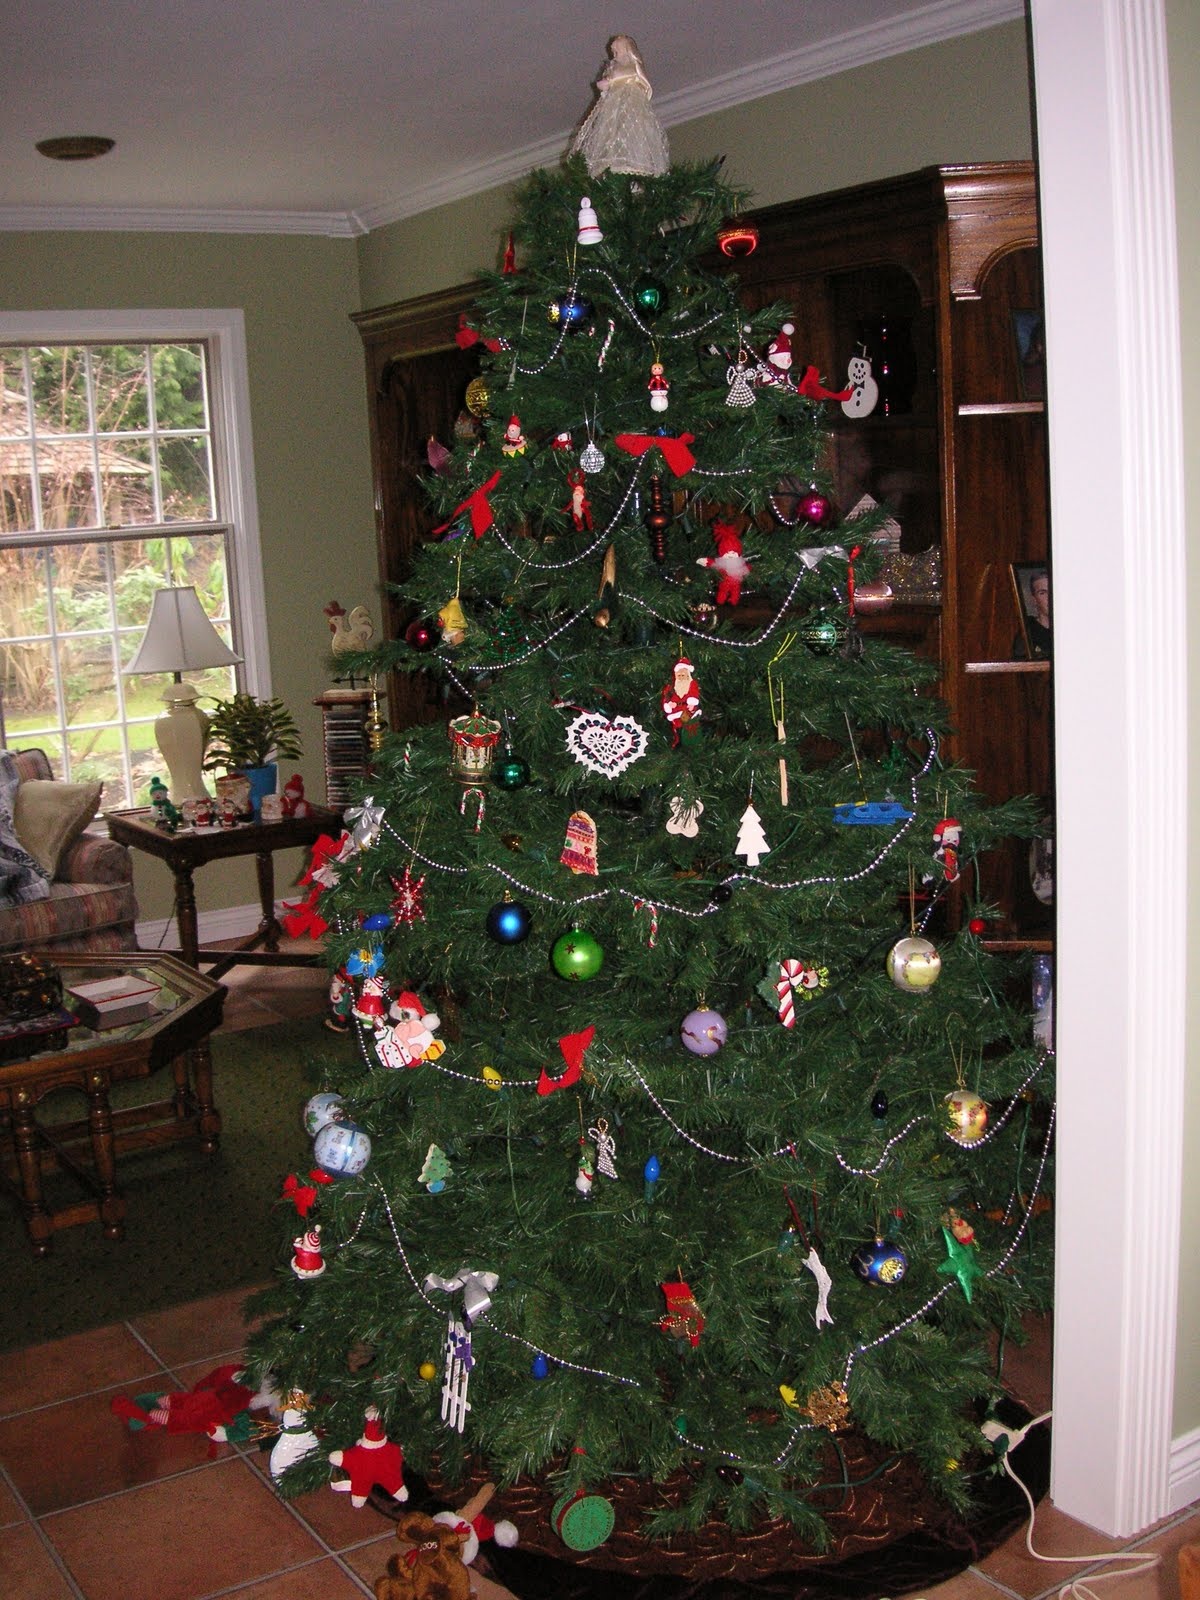 Color schemes for christmas trees - This Is Our Christmas Tree It S A Tree Full Of Memories With Each And Every Ornament I Love The Beautiful Trees That You See Done Up In Perfect Color